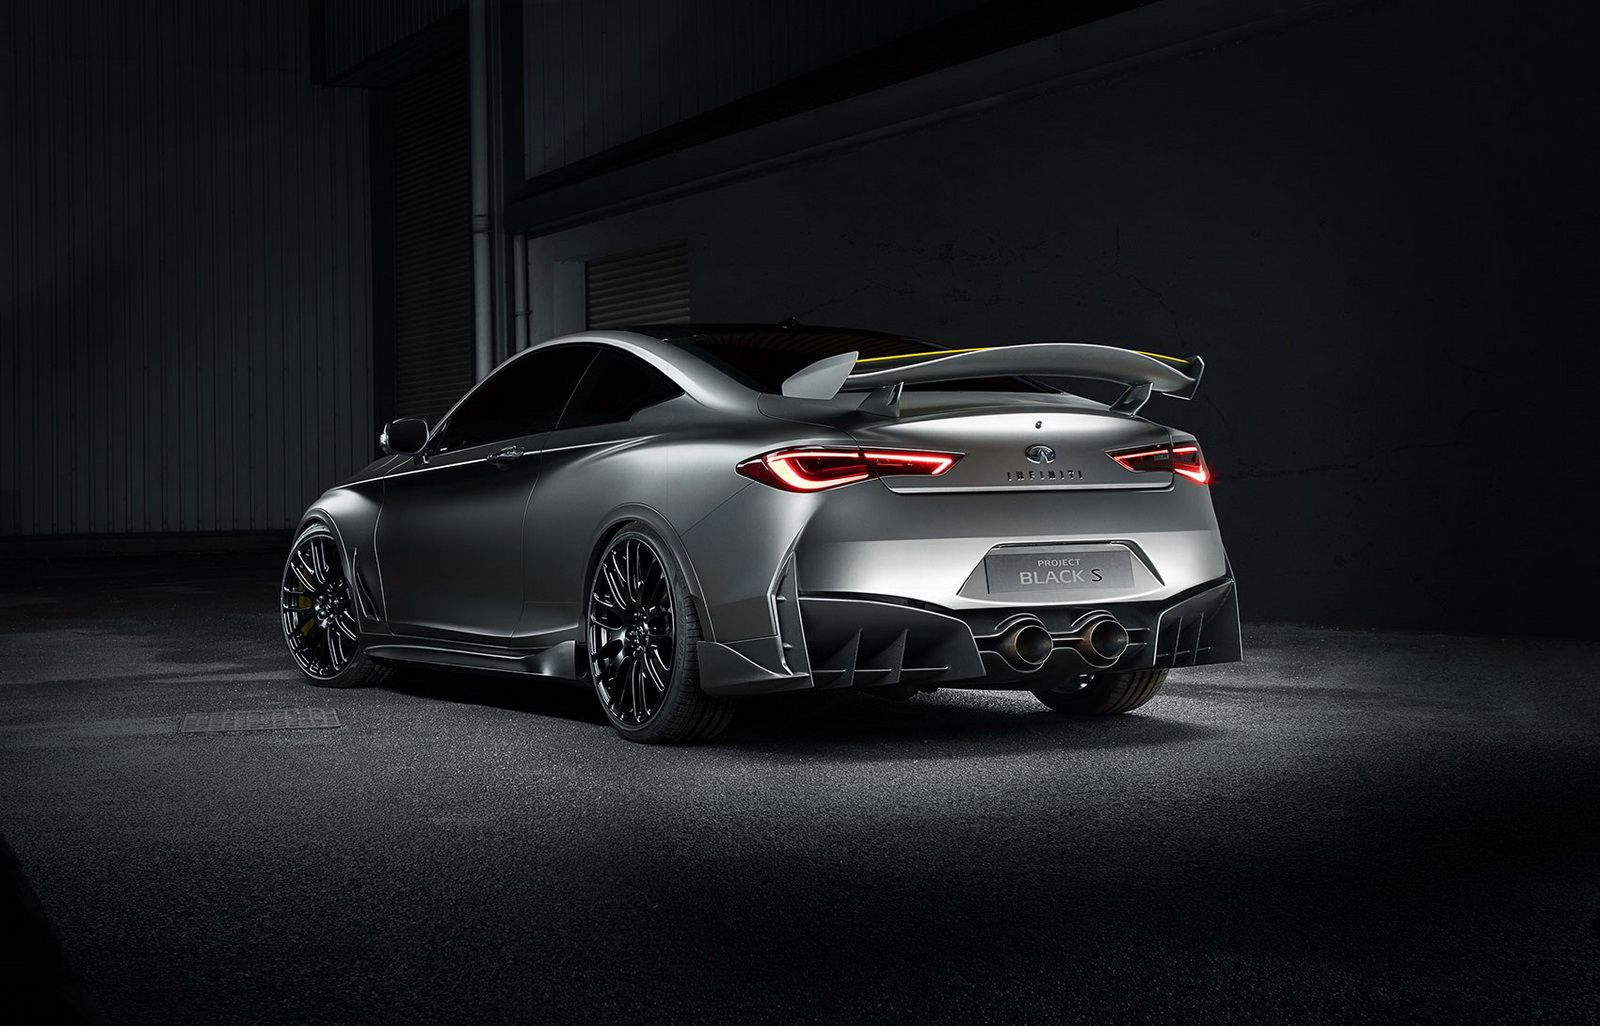 Infiniti Goes Fast N Furious With F1 Style Q60 Black S Hybrid Concept Luxury Hybrid Cars Infiniti Concept Cars